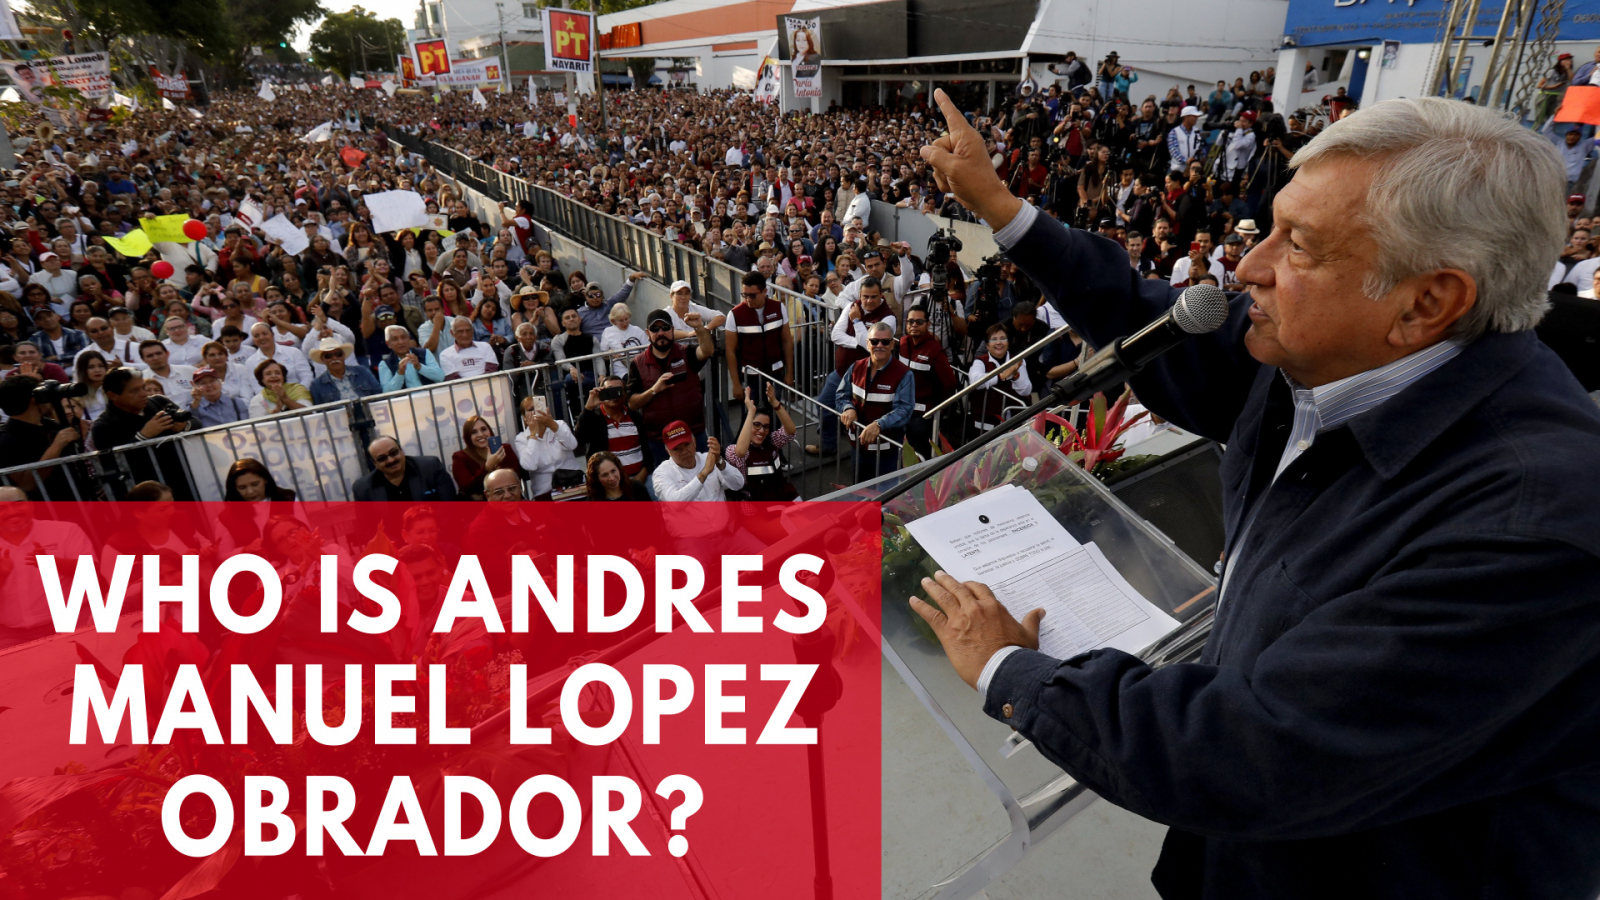 Who Is Andres Manuel Lopez Obrador?